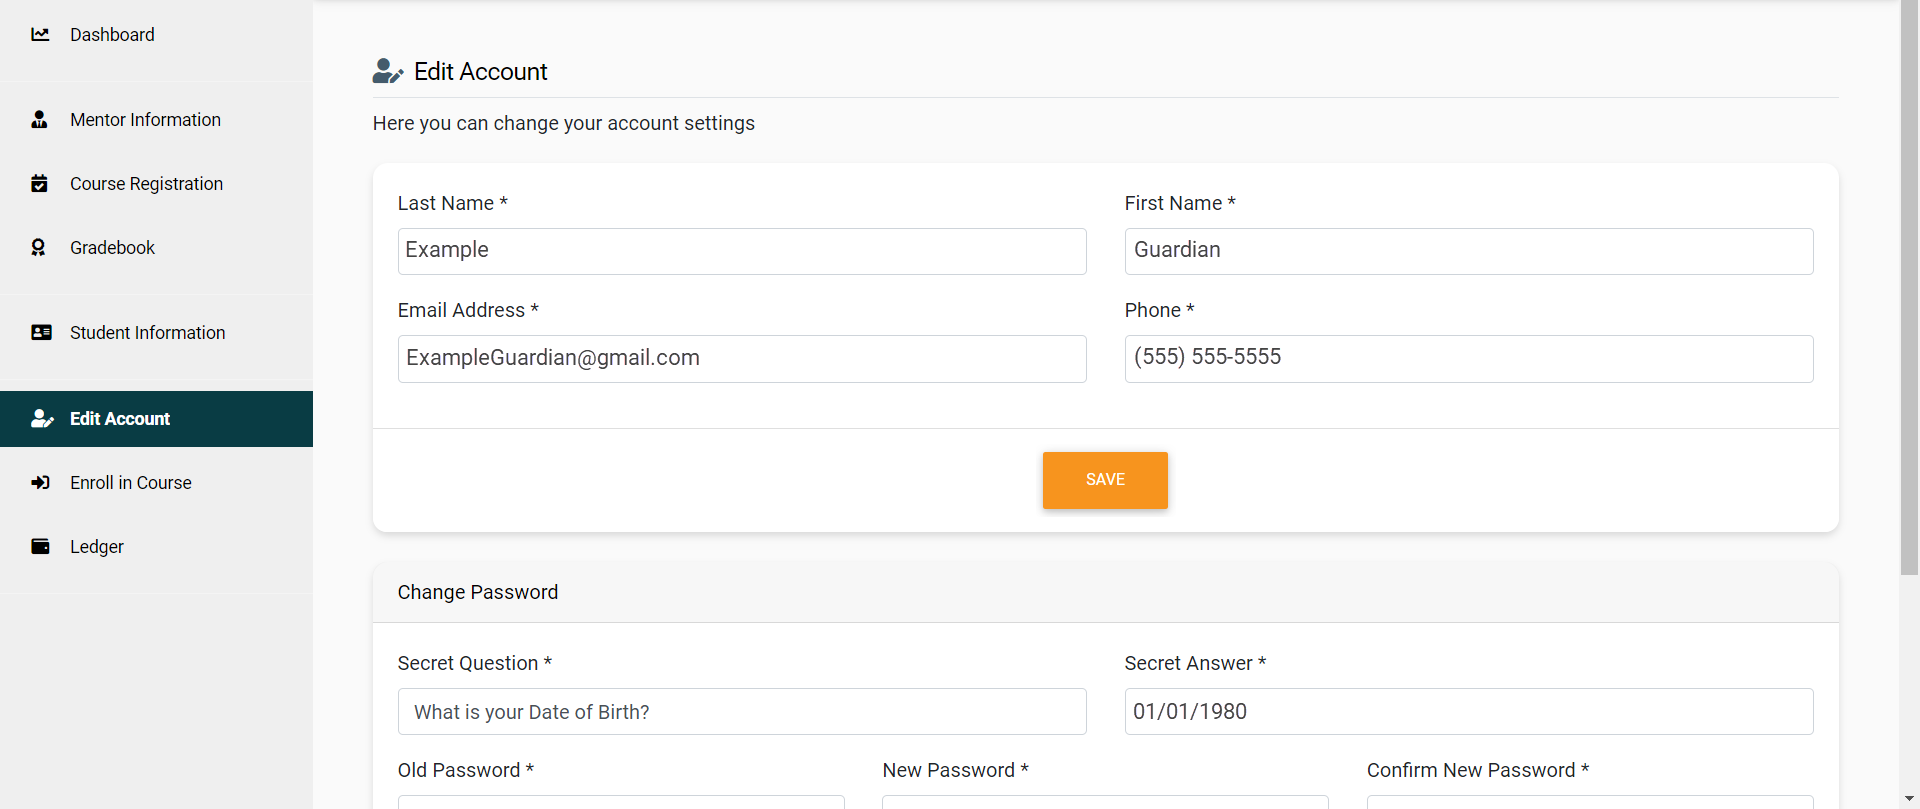 The Edit account page is shown displaying the ability to change profile information and change password.